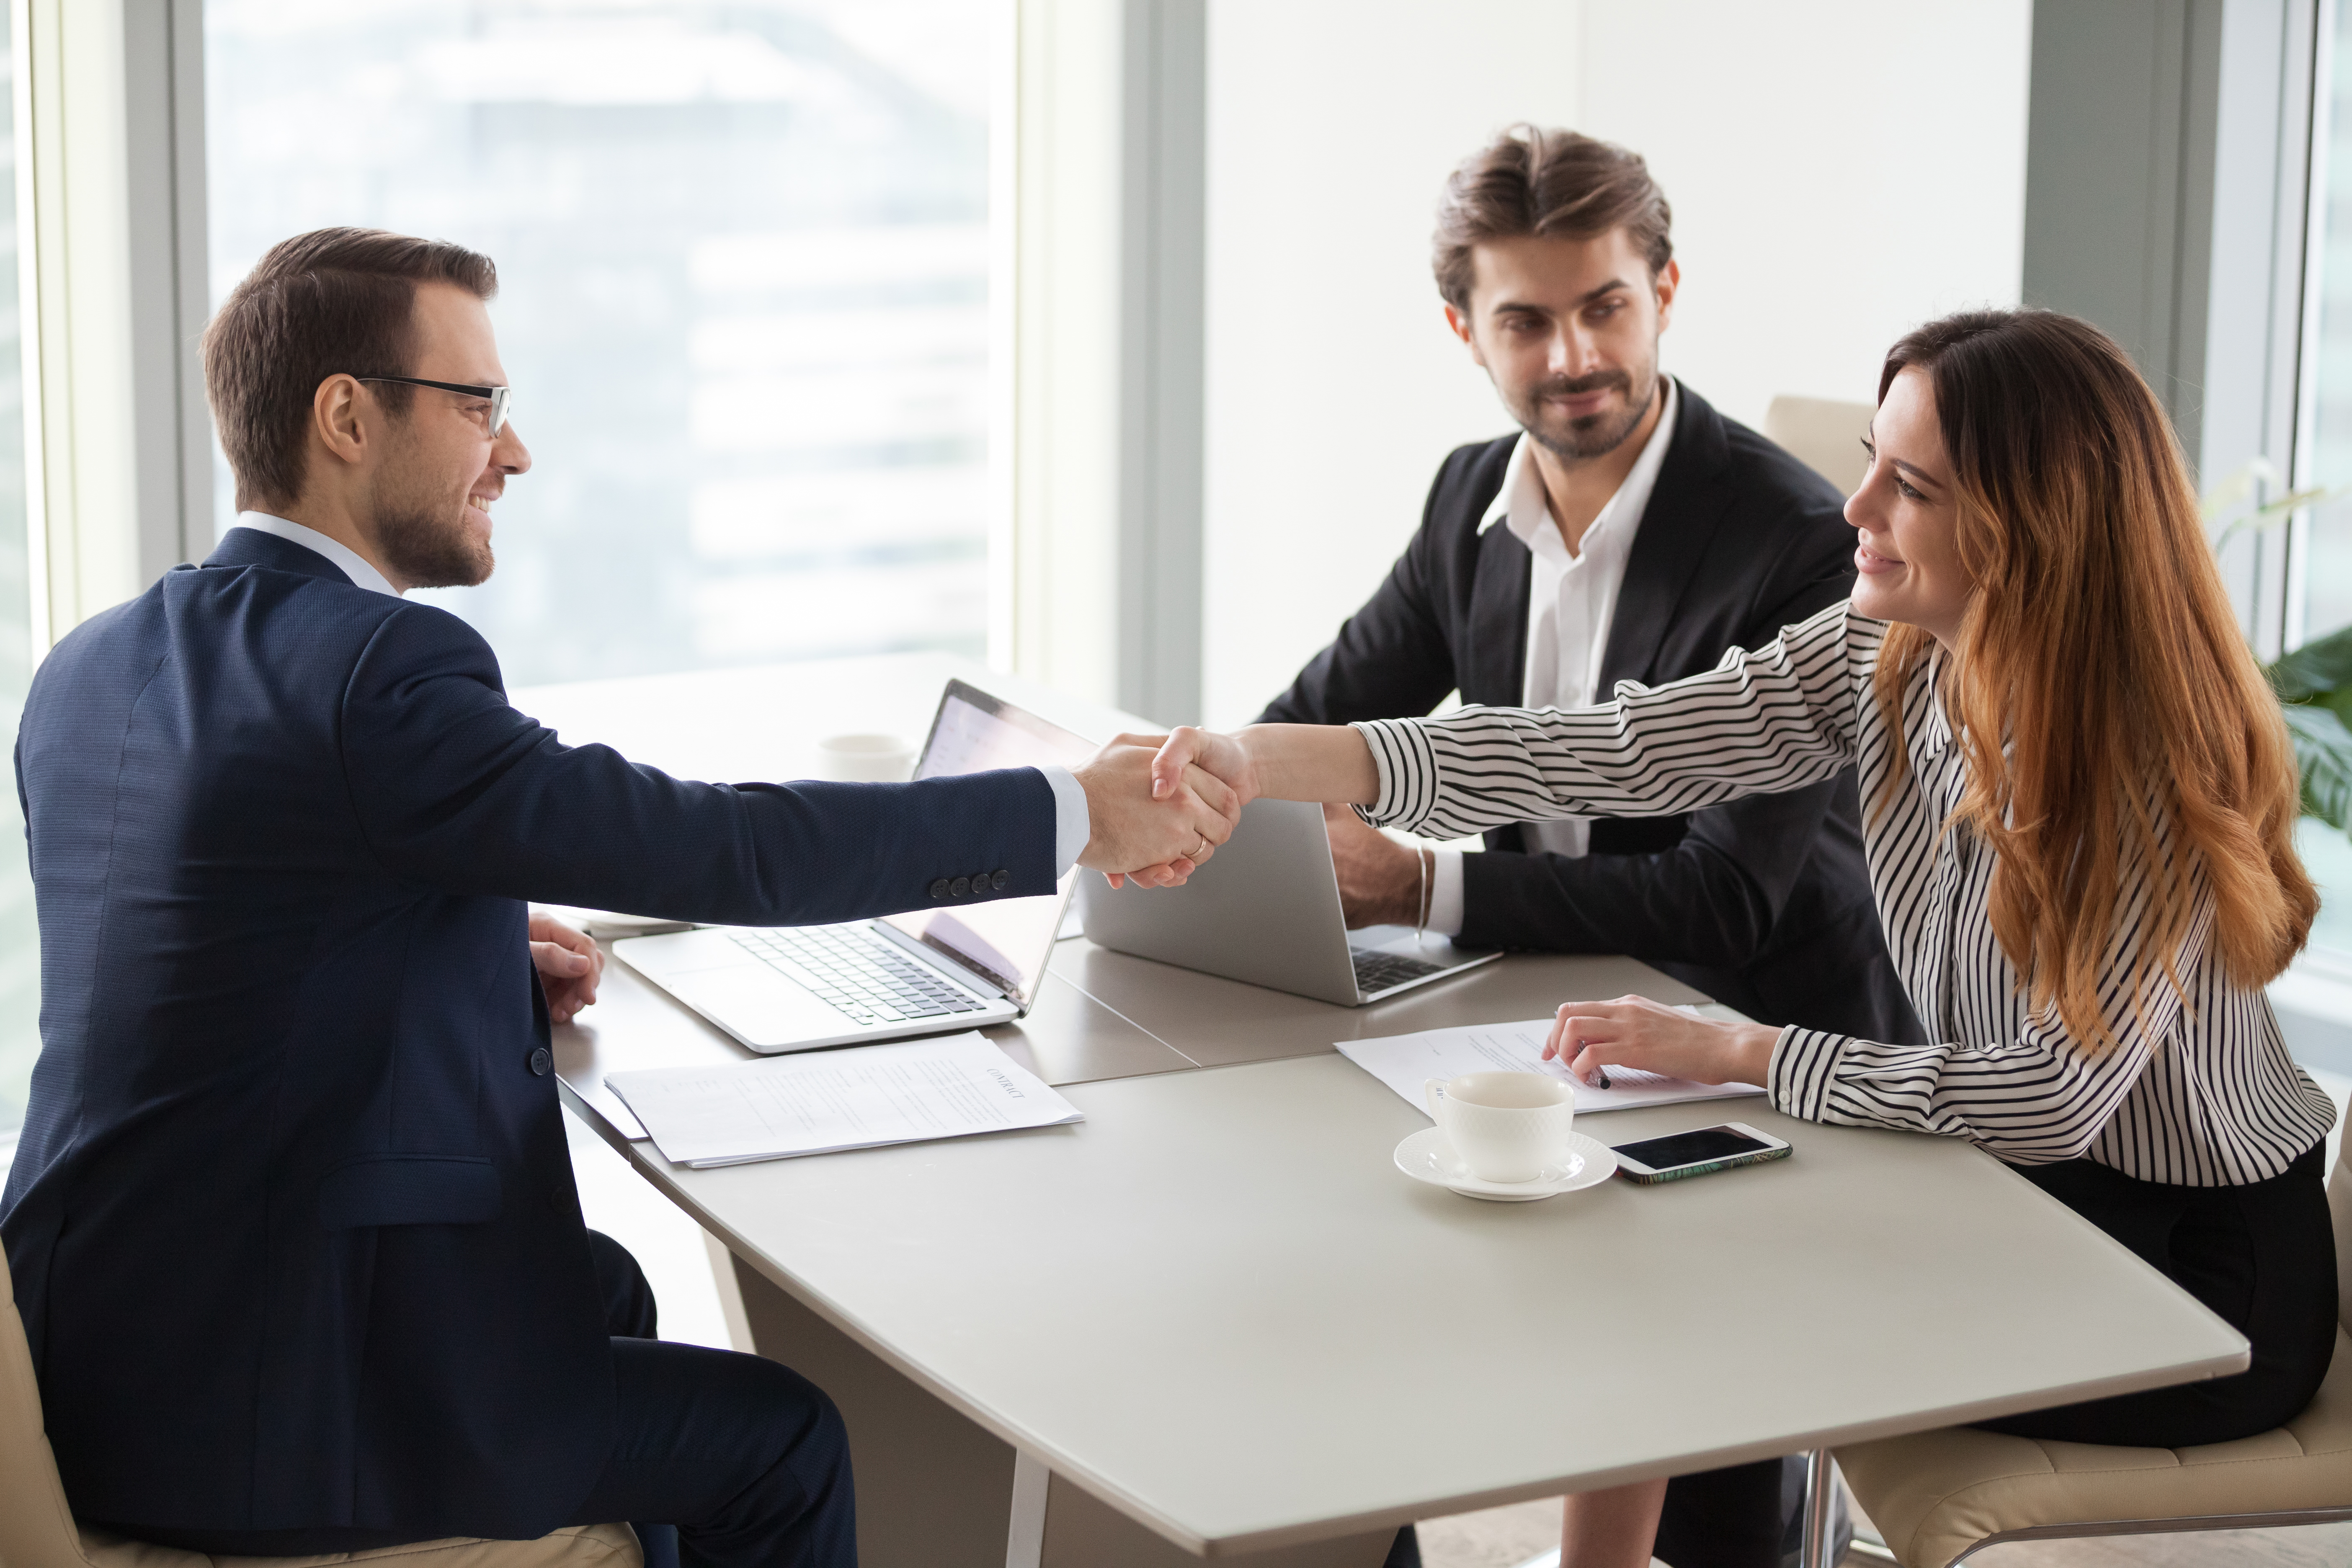 4 Ways to Build Rapport with Your Prospects